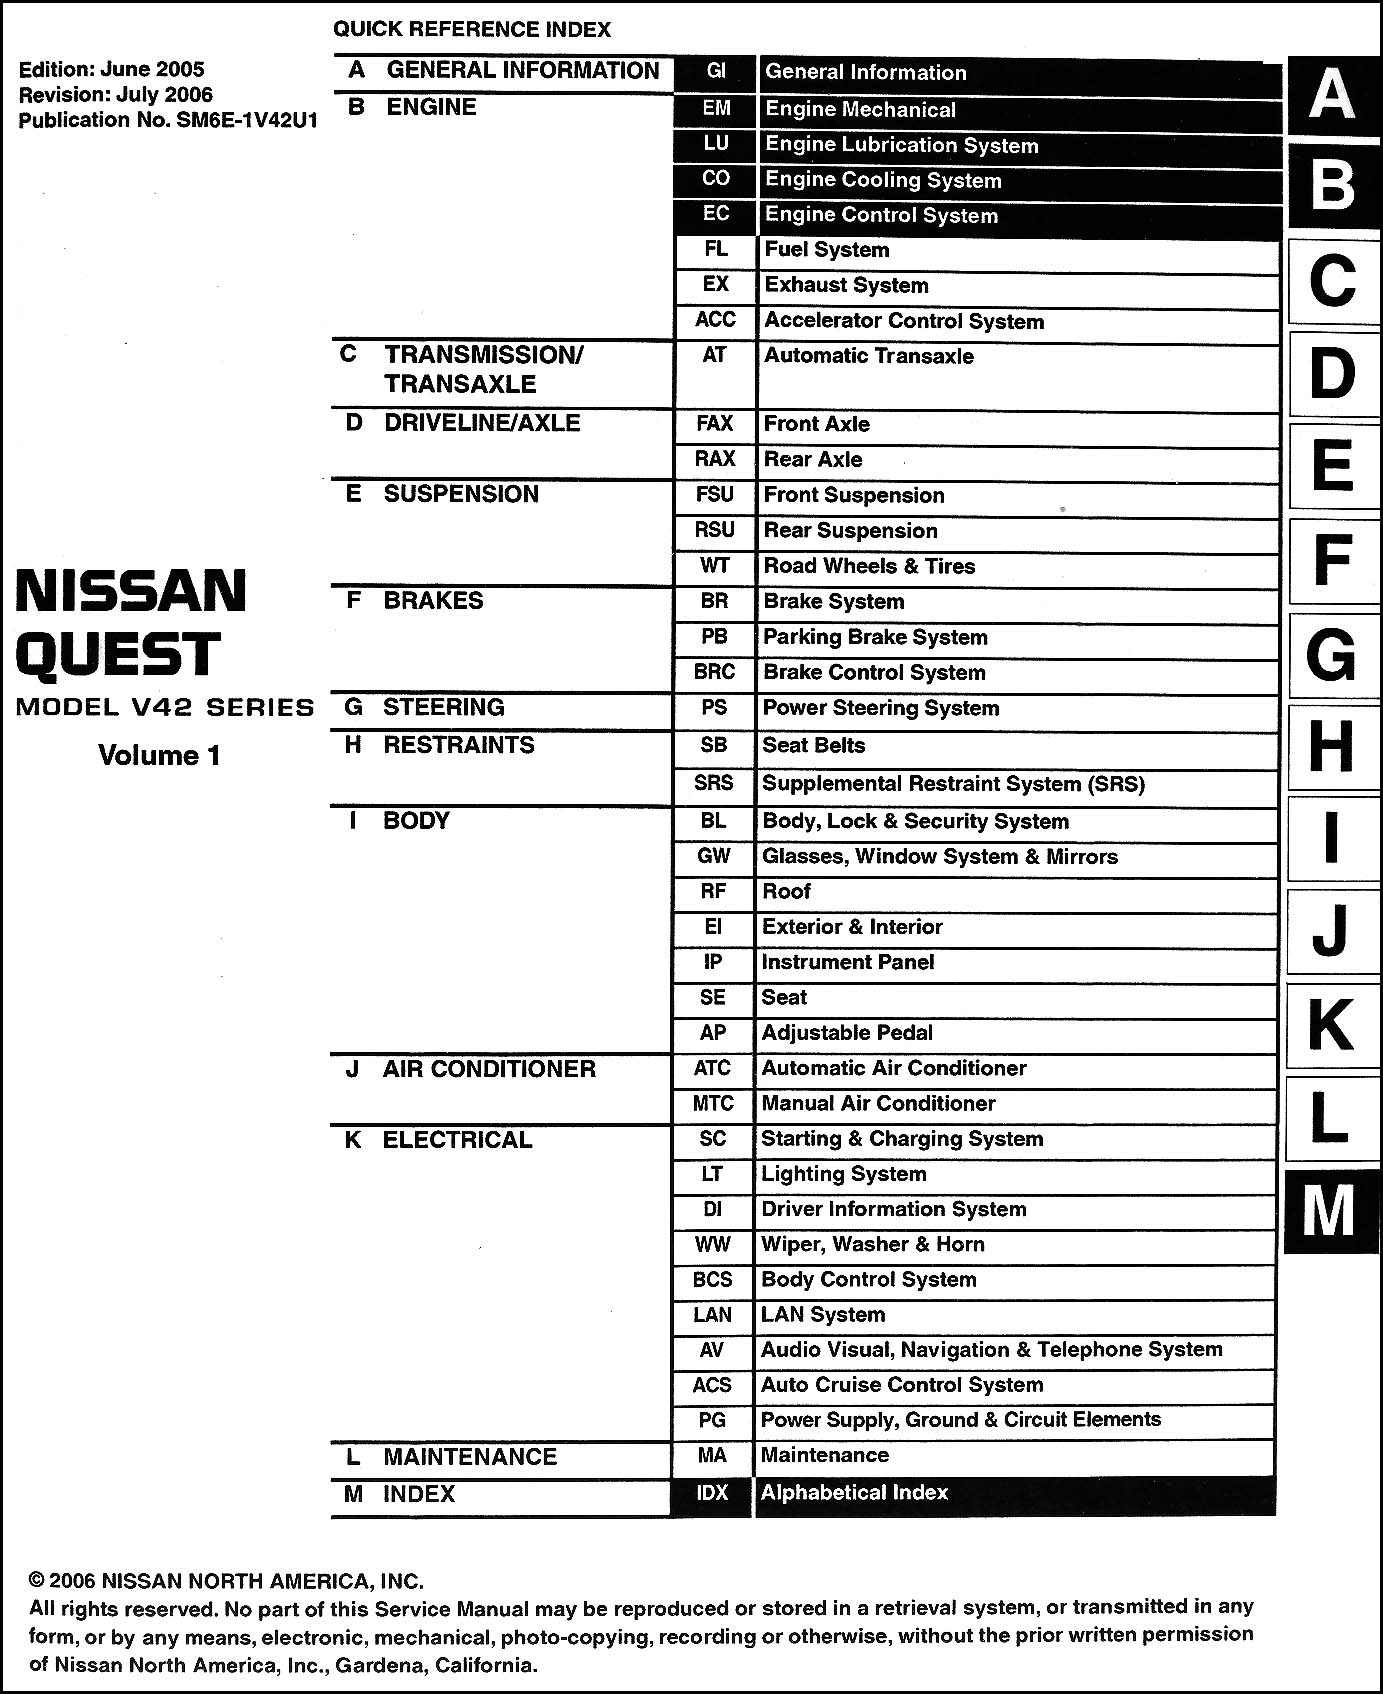 2006 Nissan Quest Fuse Box Guide